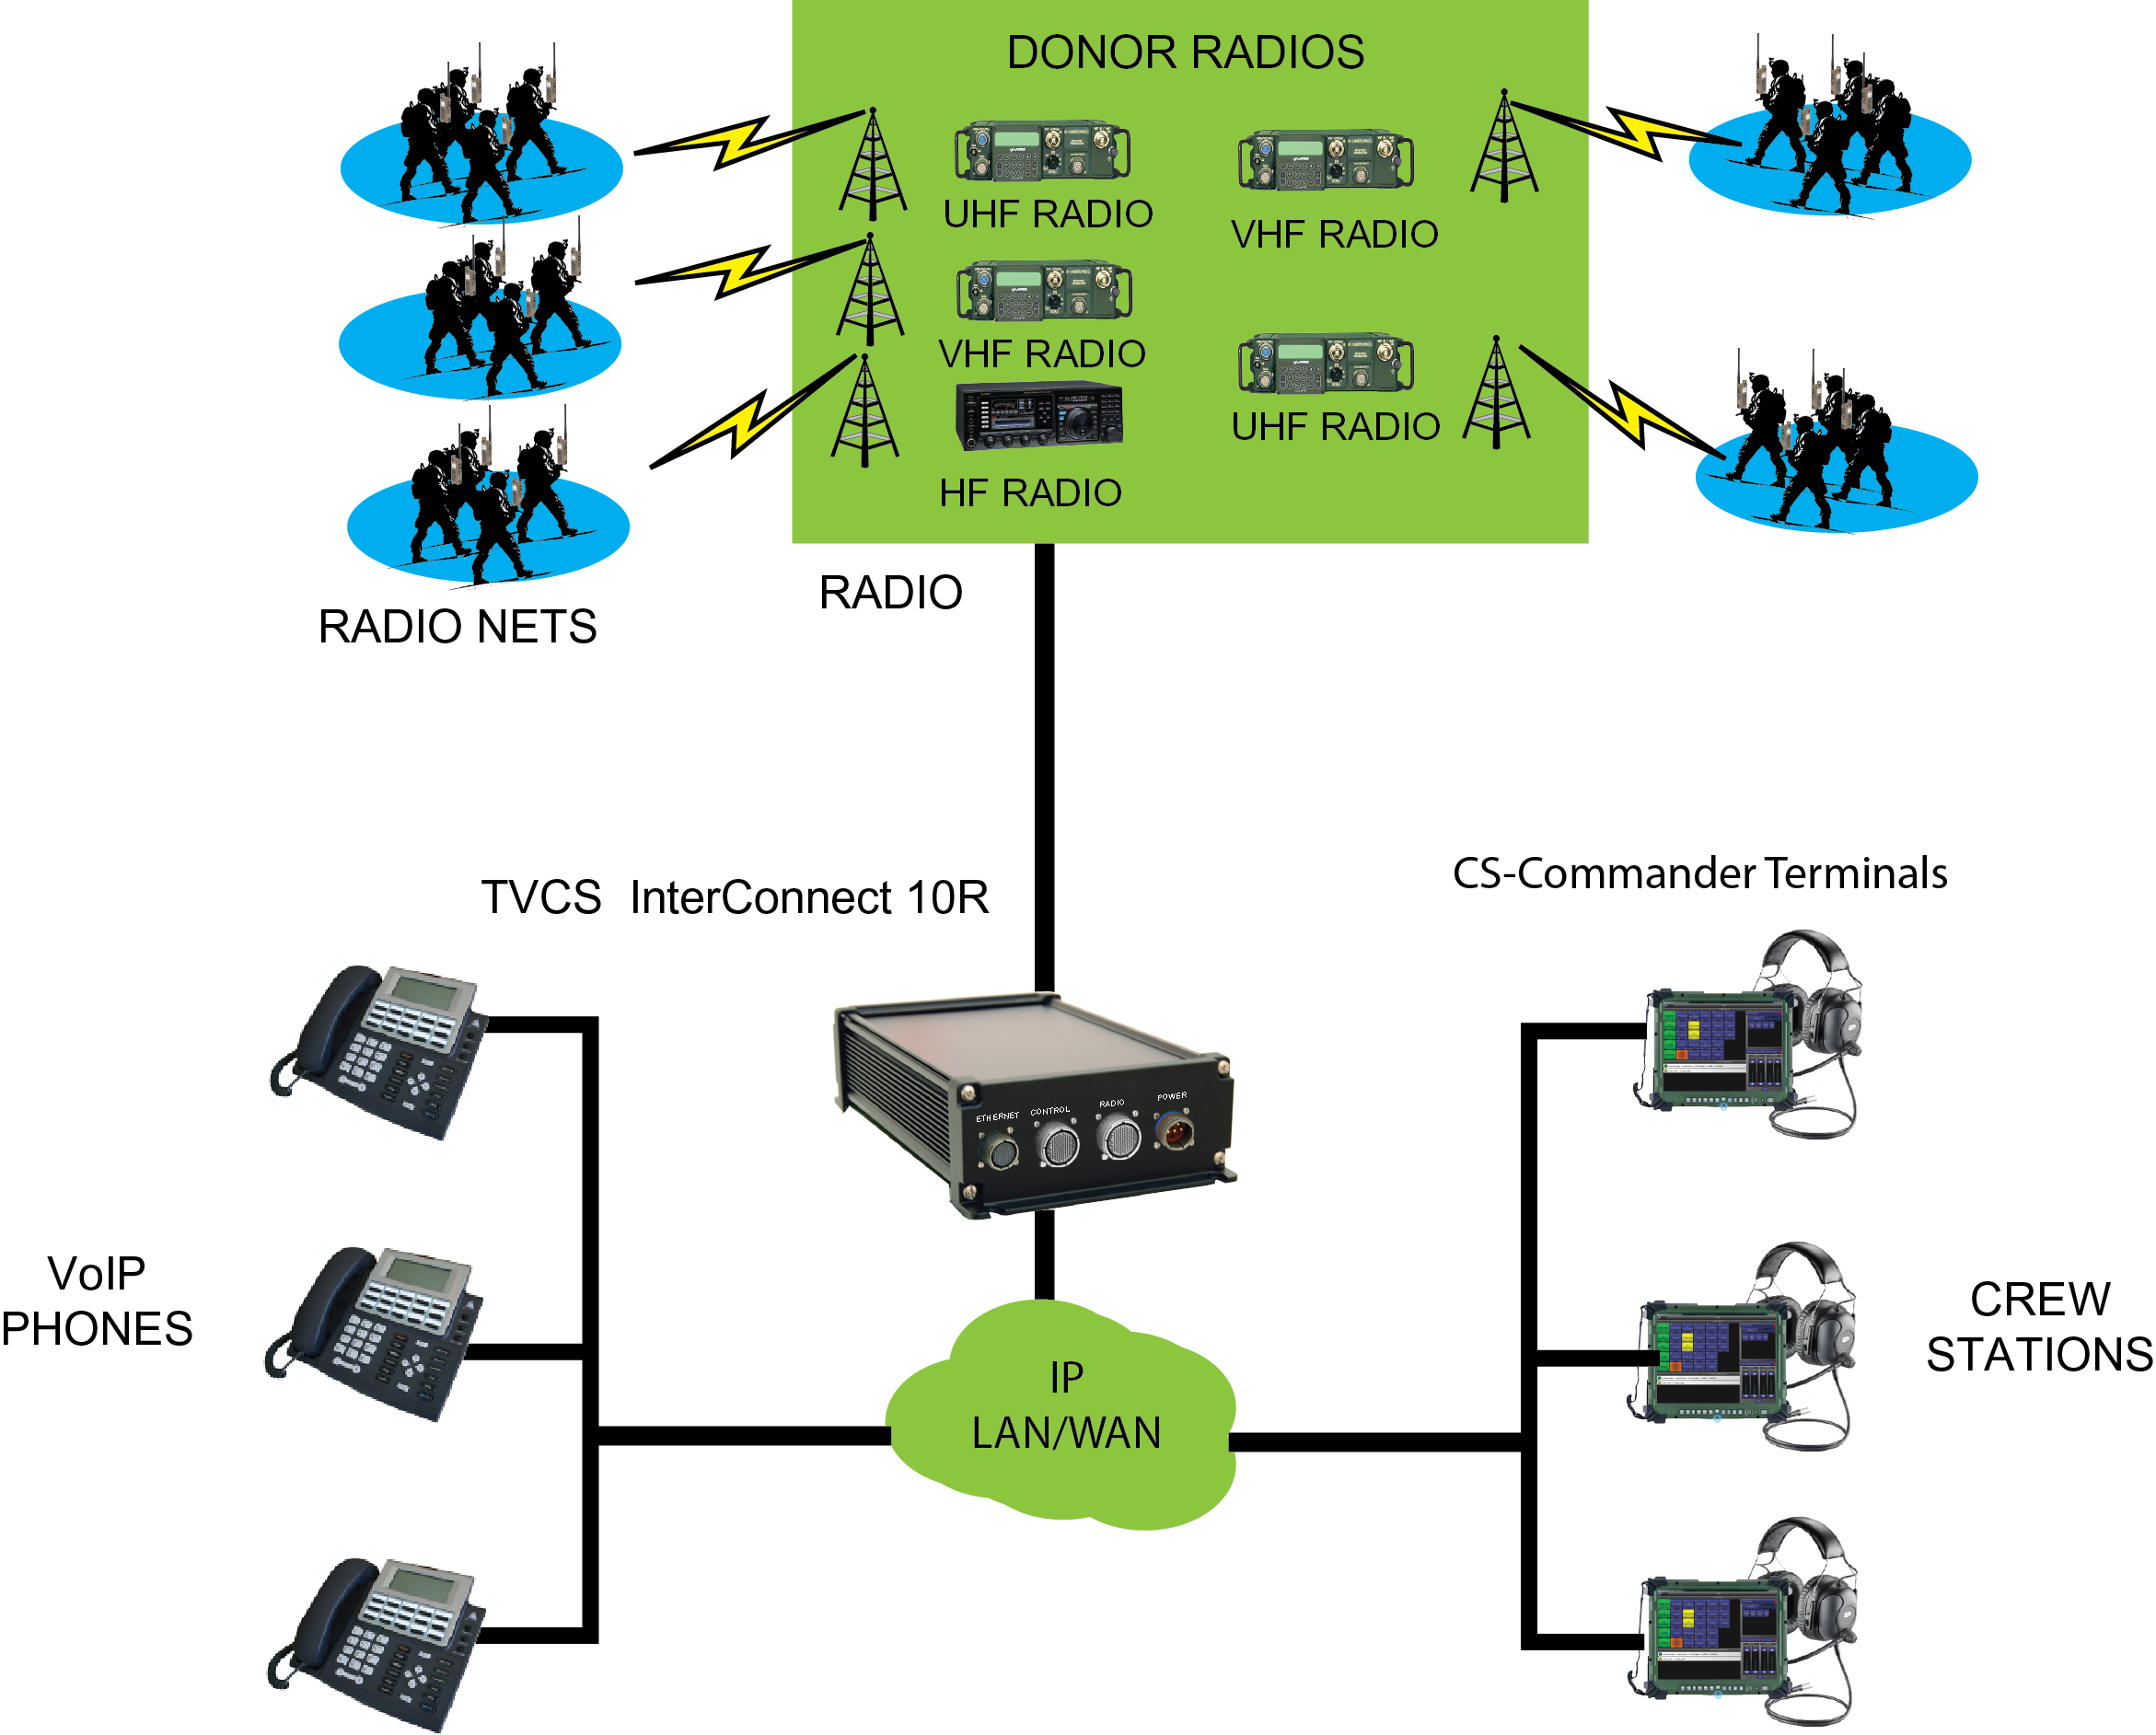 TVCS-Interconnect 10R-military radio communication/conferencing switch and VoIP radio gateway